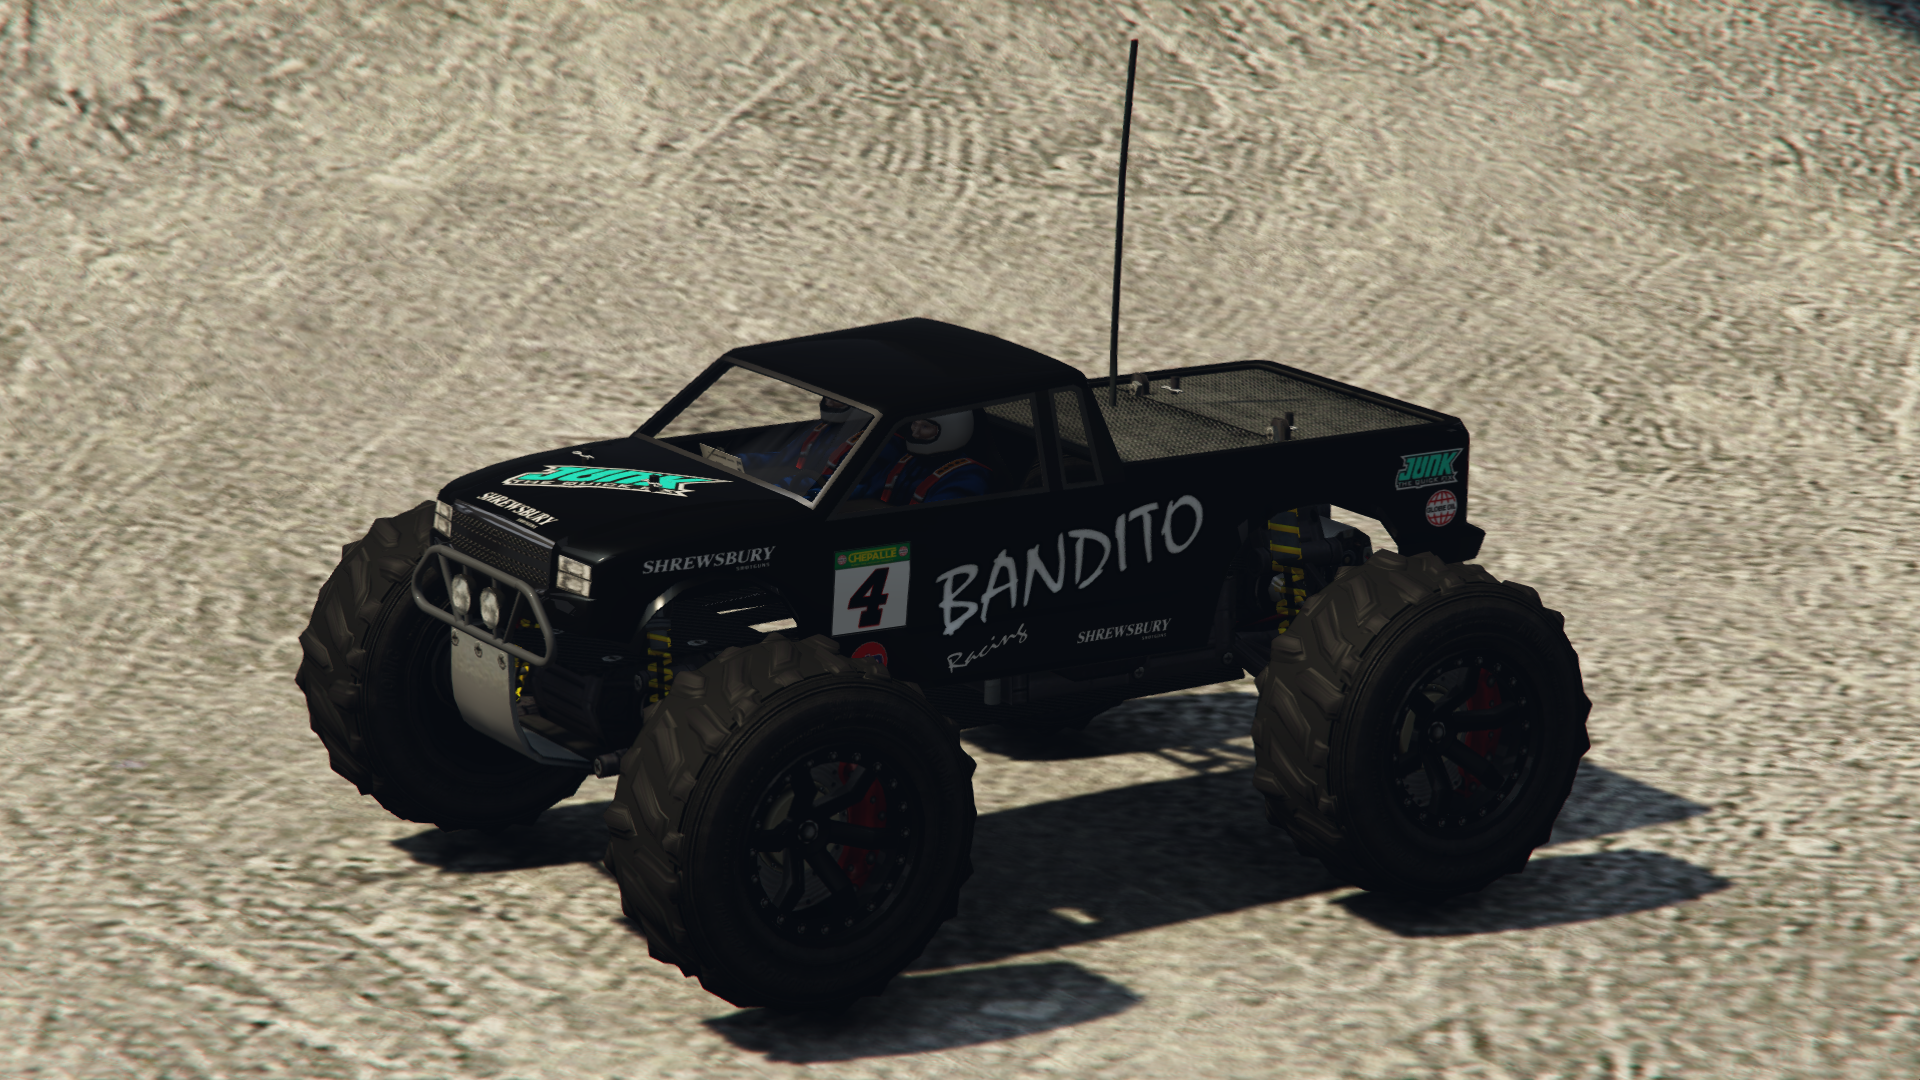 RC Bandito | GTA Wiki | FANDOM powered by Wikia